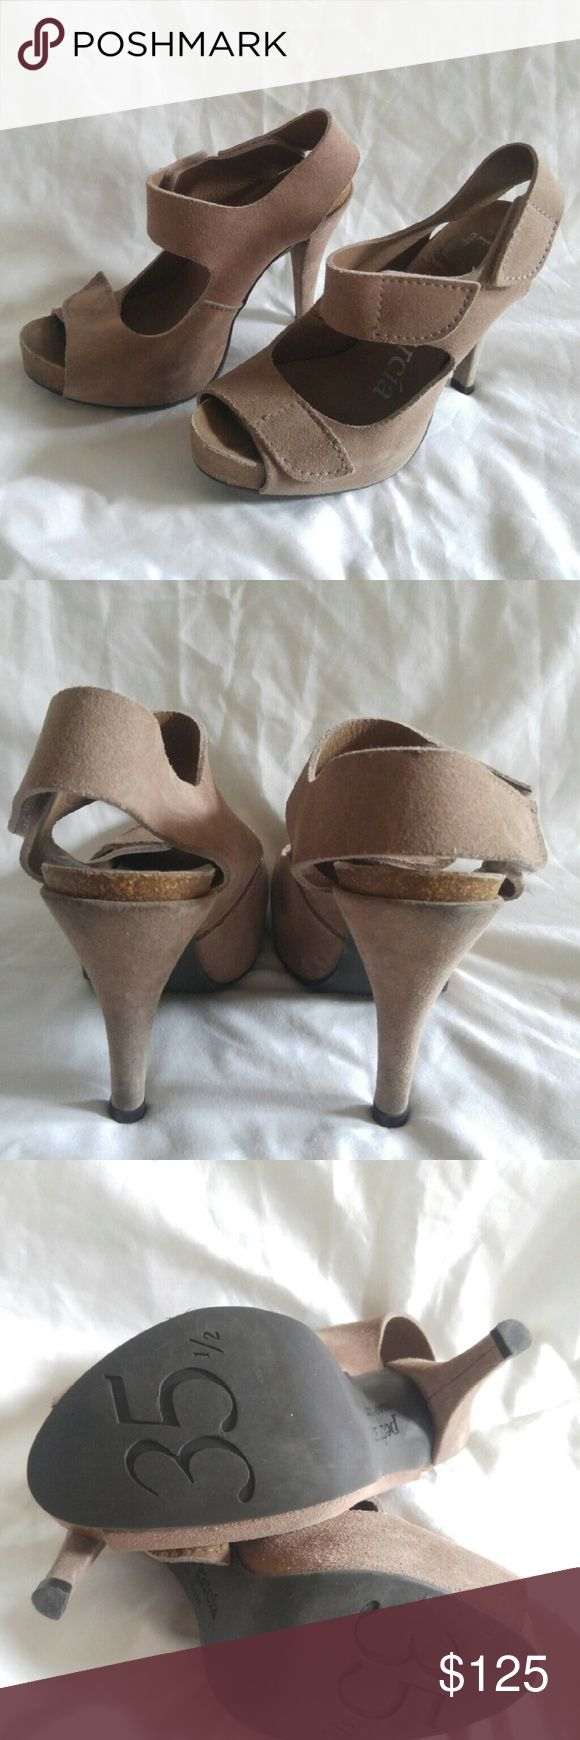 Pedro Garcia Charlize Sandal Size 35.5 3 inch high heel by Pedro Garcia. In like new condition. size 35.5. Pedro Garcia   Shoes Heels